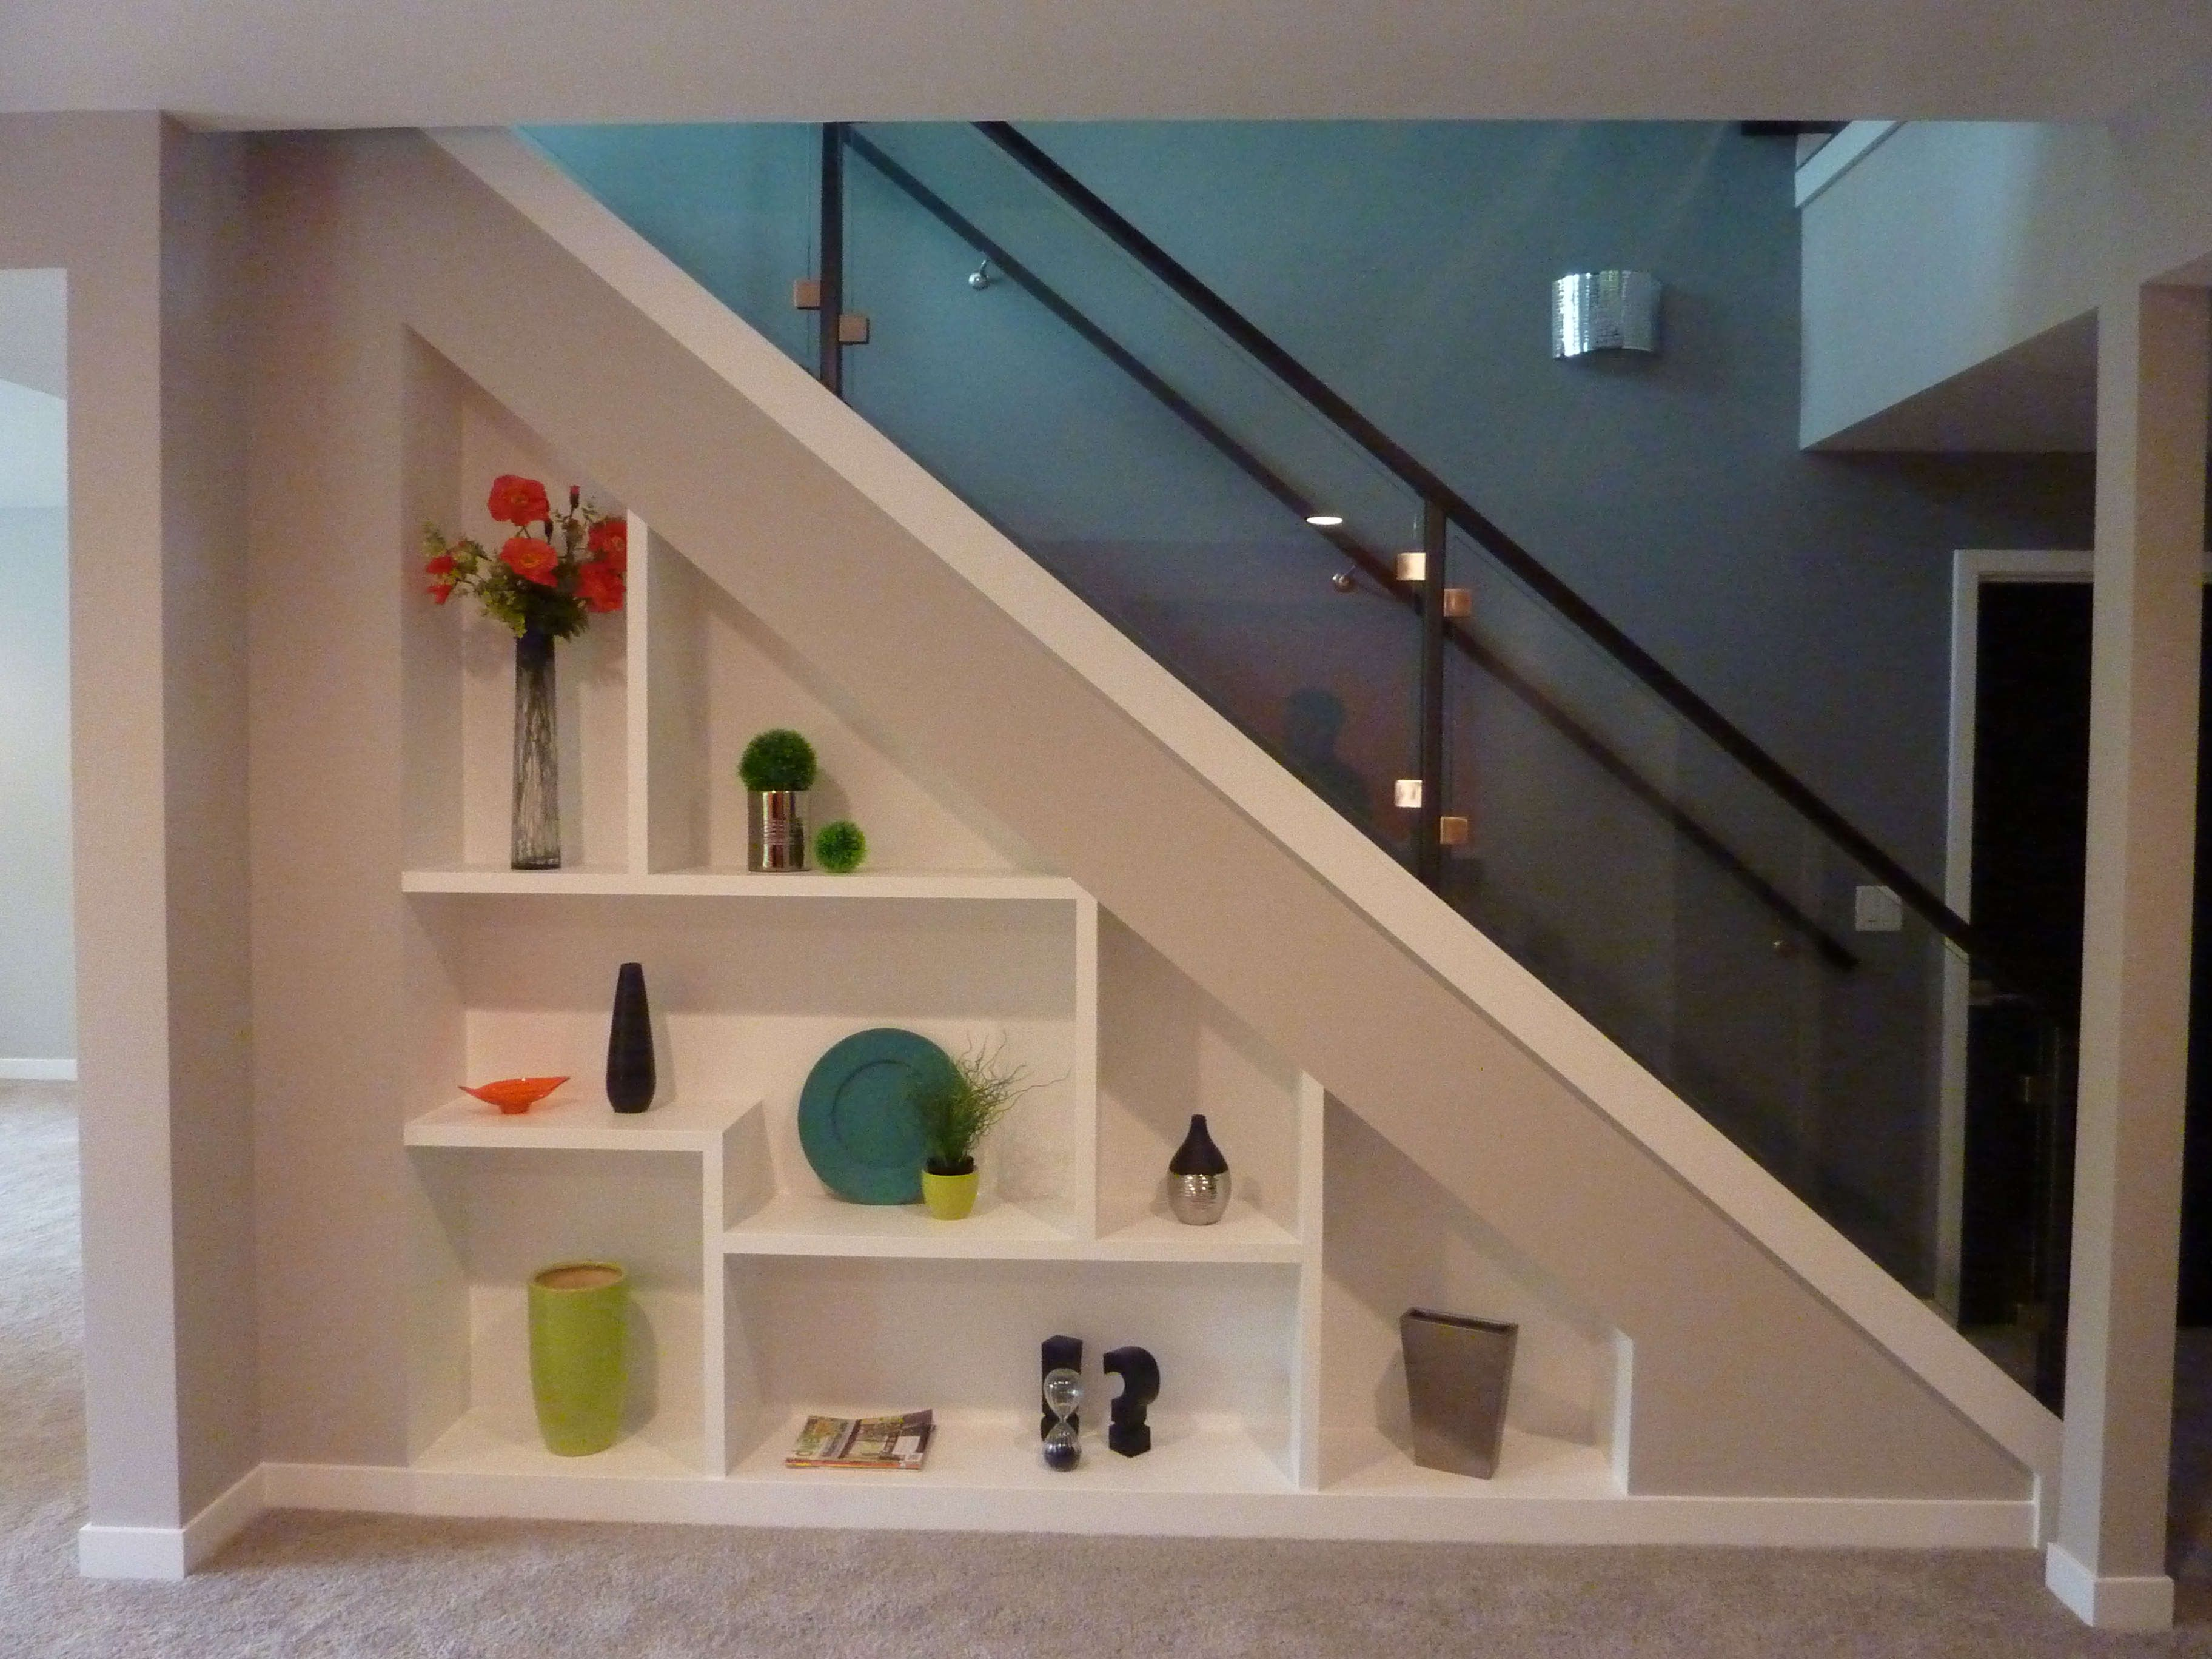 Modern Storage Under Stair With Plaid White Shelves And Glass